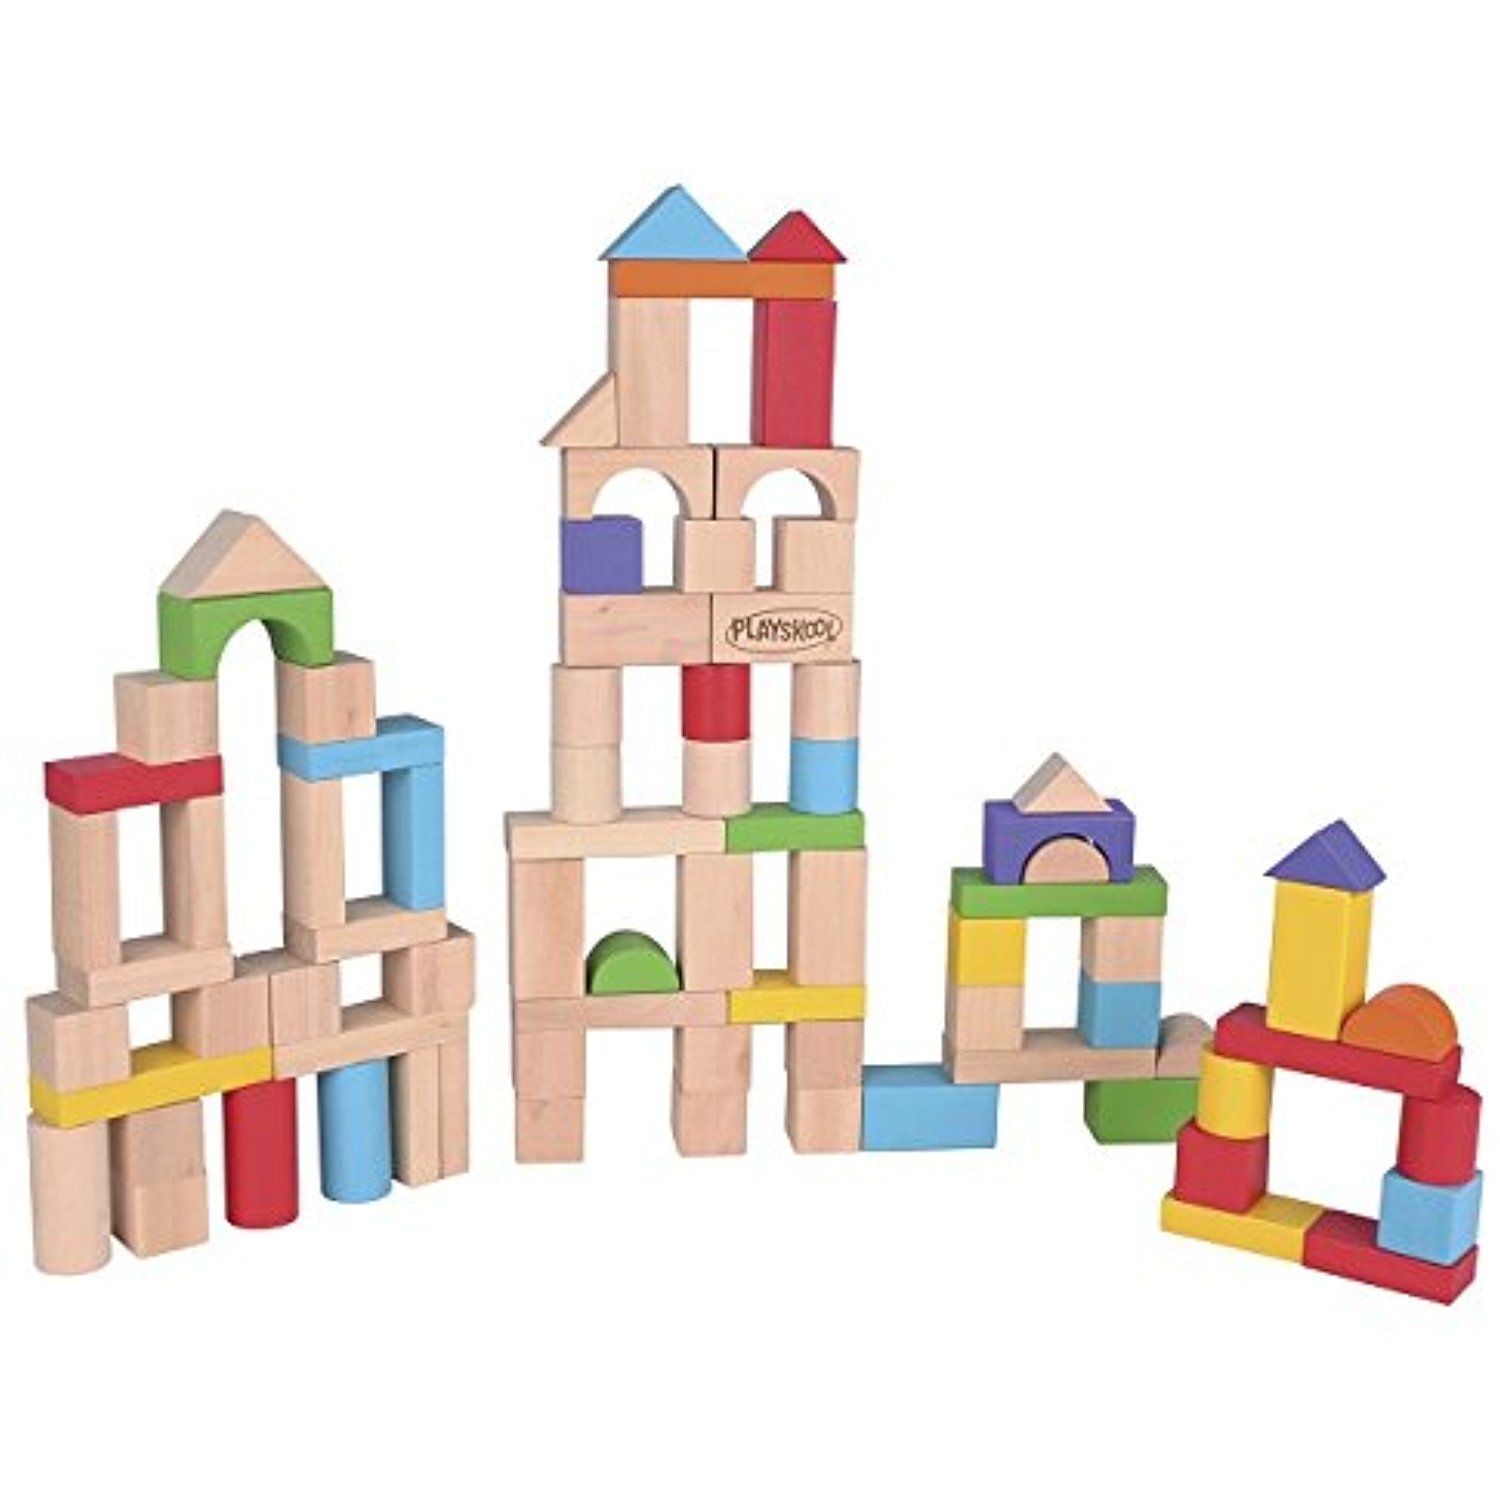 Playskool Cn Blocks 80 Piece Click Image For More Details